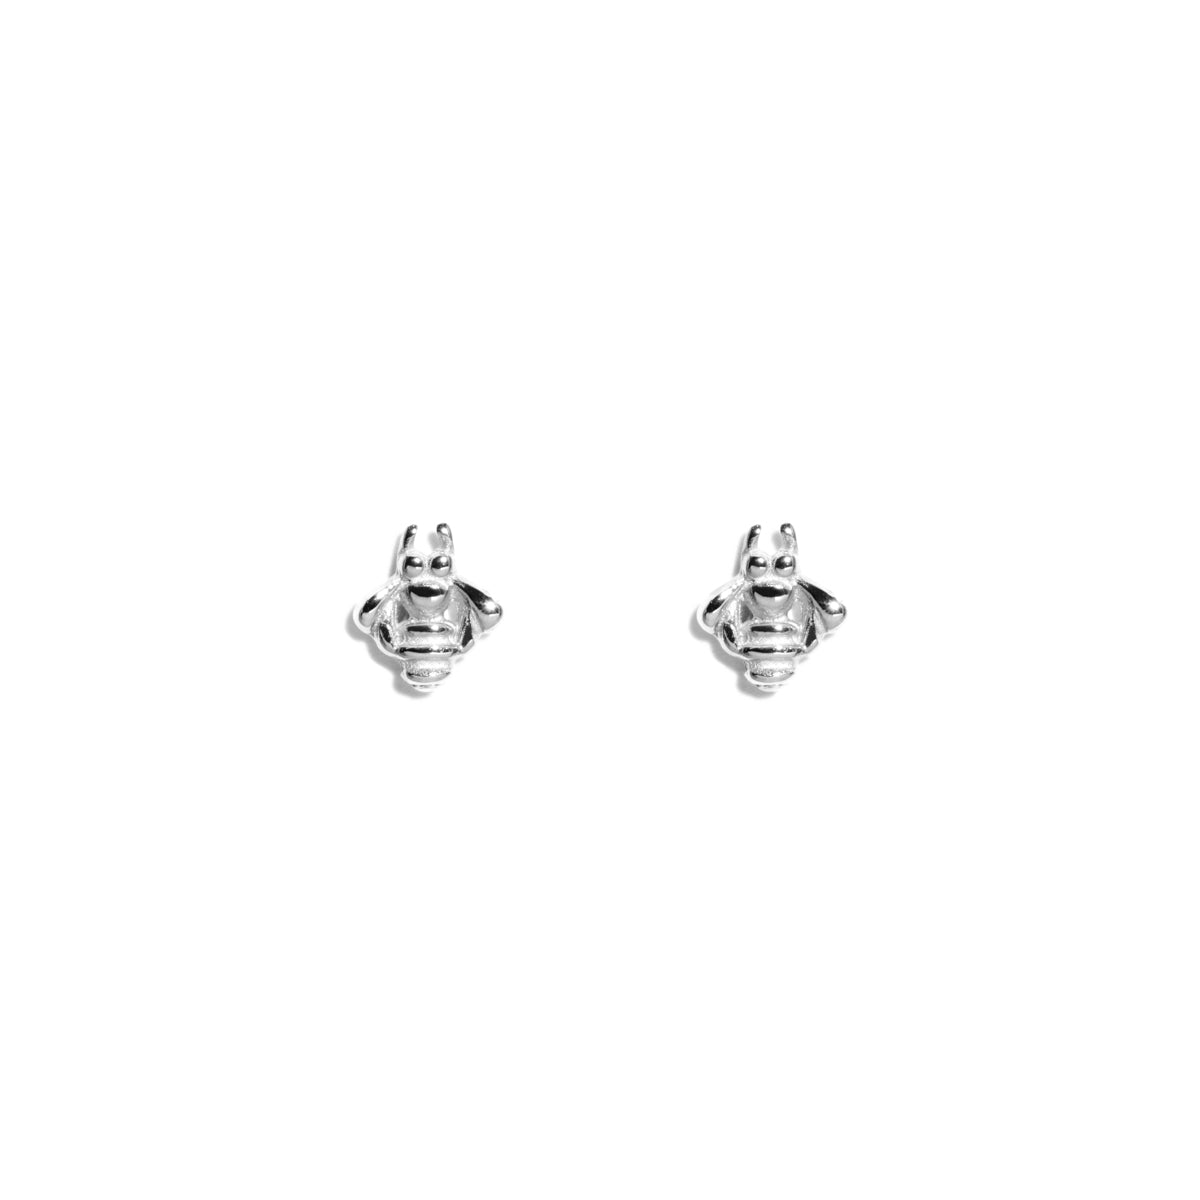 The Silver Tiny Bumble Bee Stud Earrings